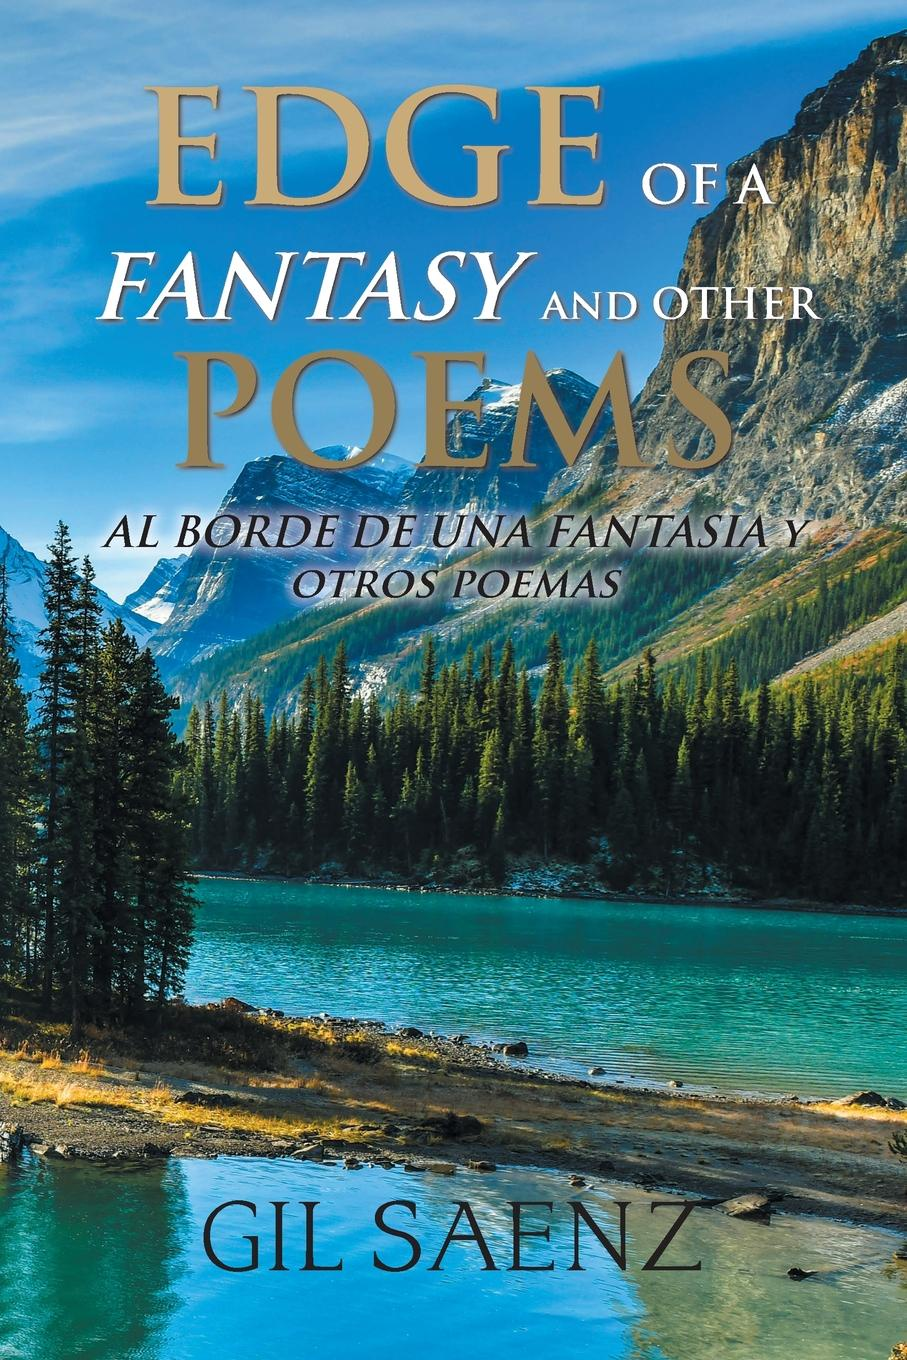 Gil Saenz Edge of a Fantasy and Other Poems. Al Borde De Una Fantasia Y Otros Poemas bessie lawrence thanksgiving and other poems